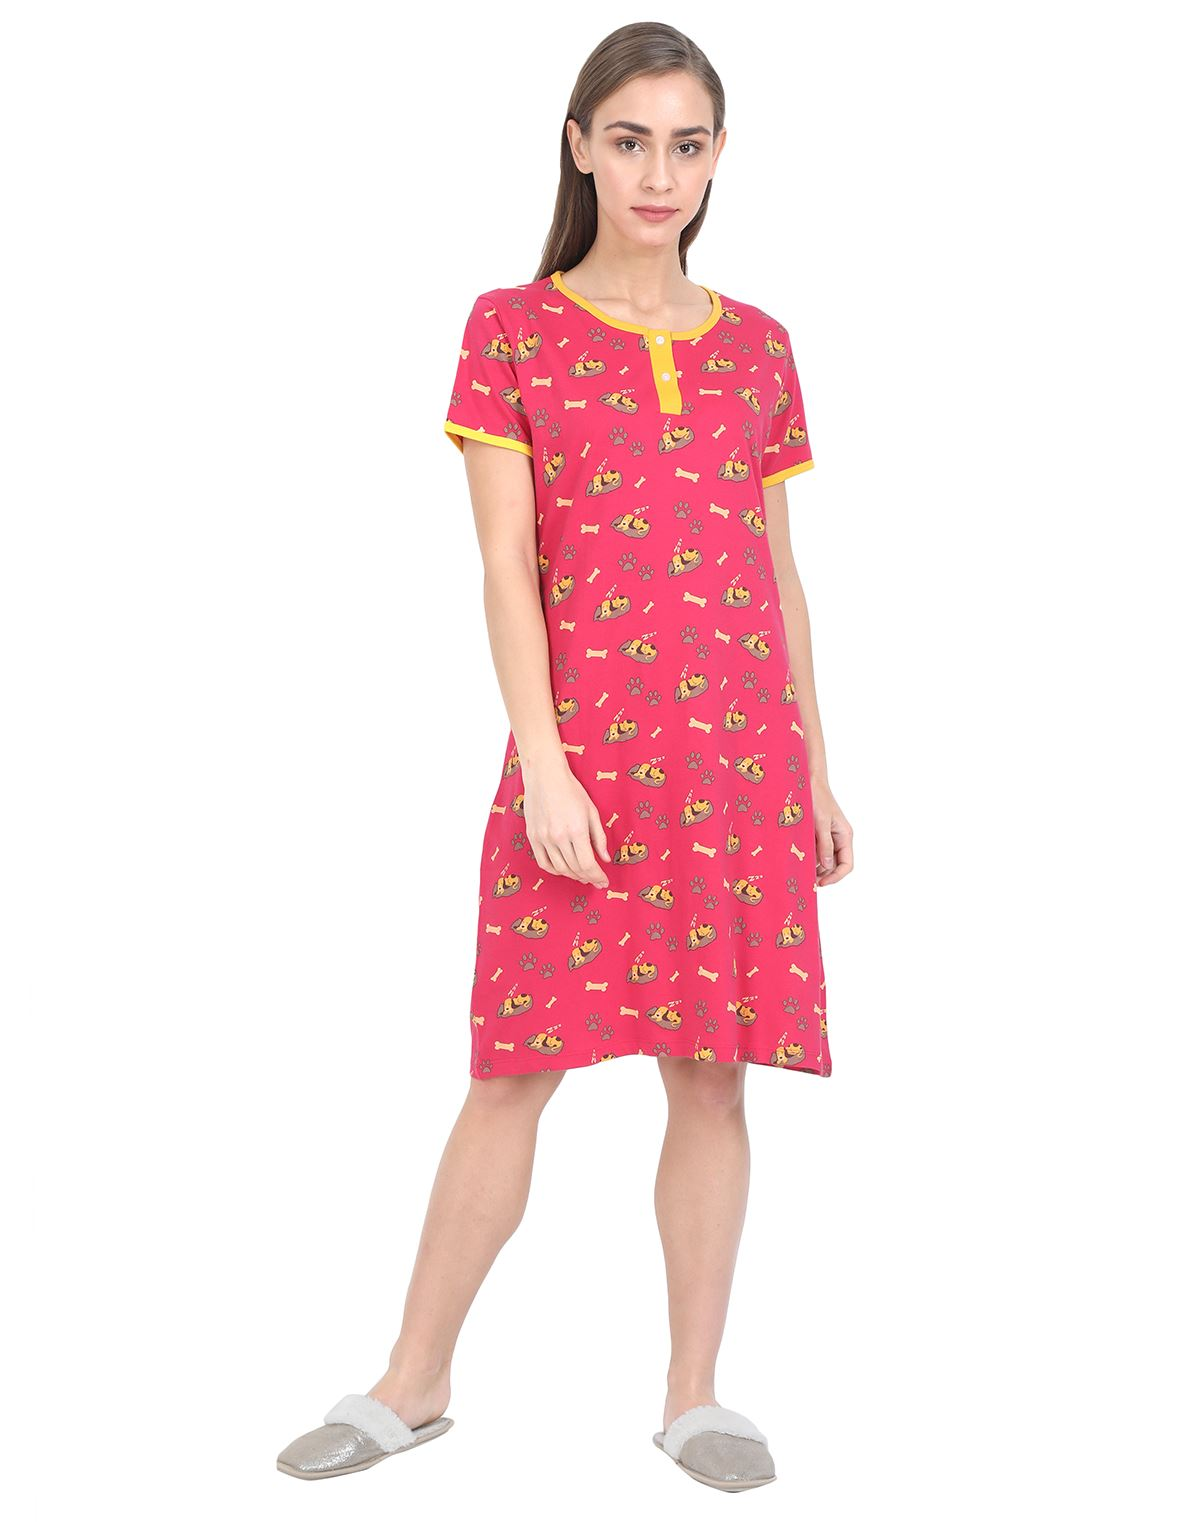 Women's Short Nightgown - 100% Cotton - Rose Red Womens Nightgown NH - MRS